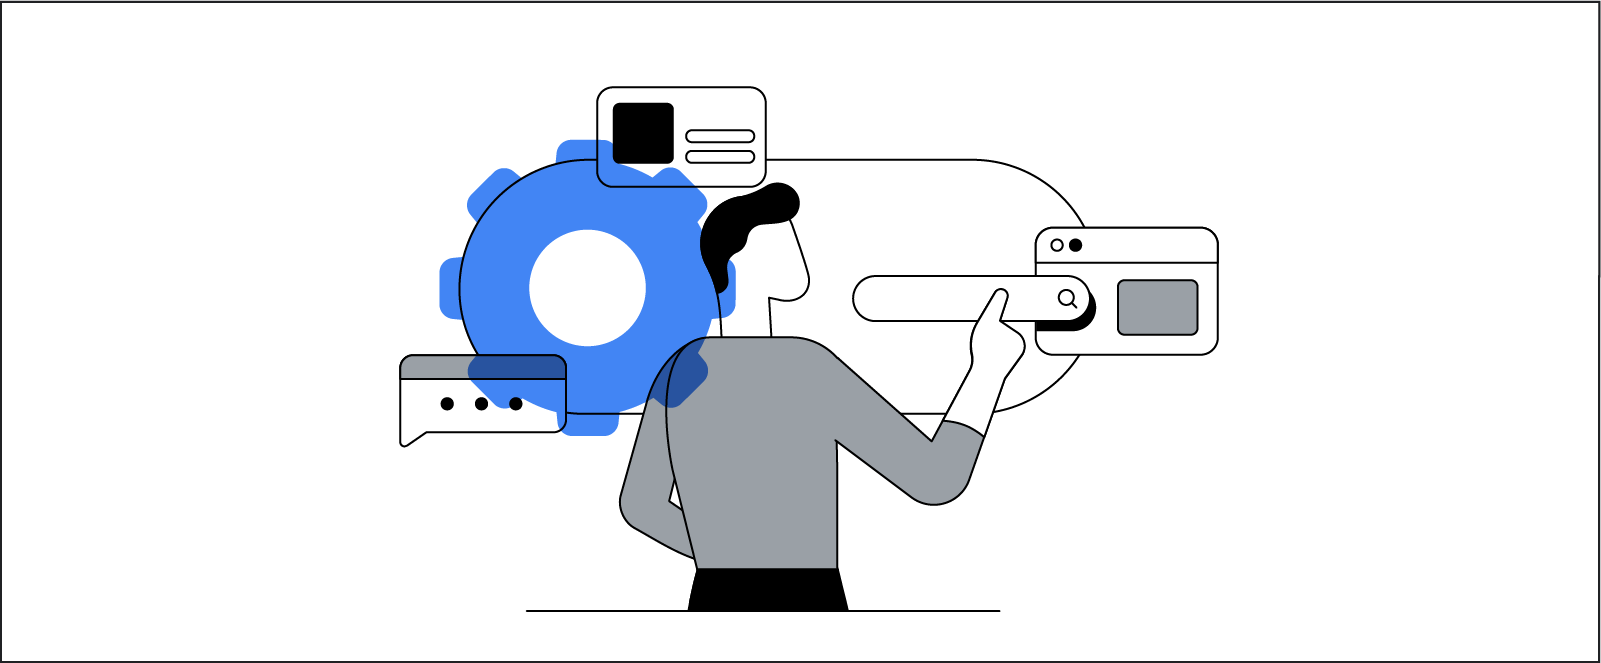 A stylized illustration represents a person interacting with a variety of digital interfaces, from search and user settings to video and chat.